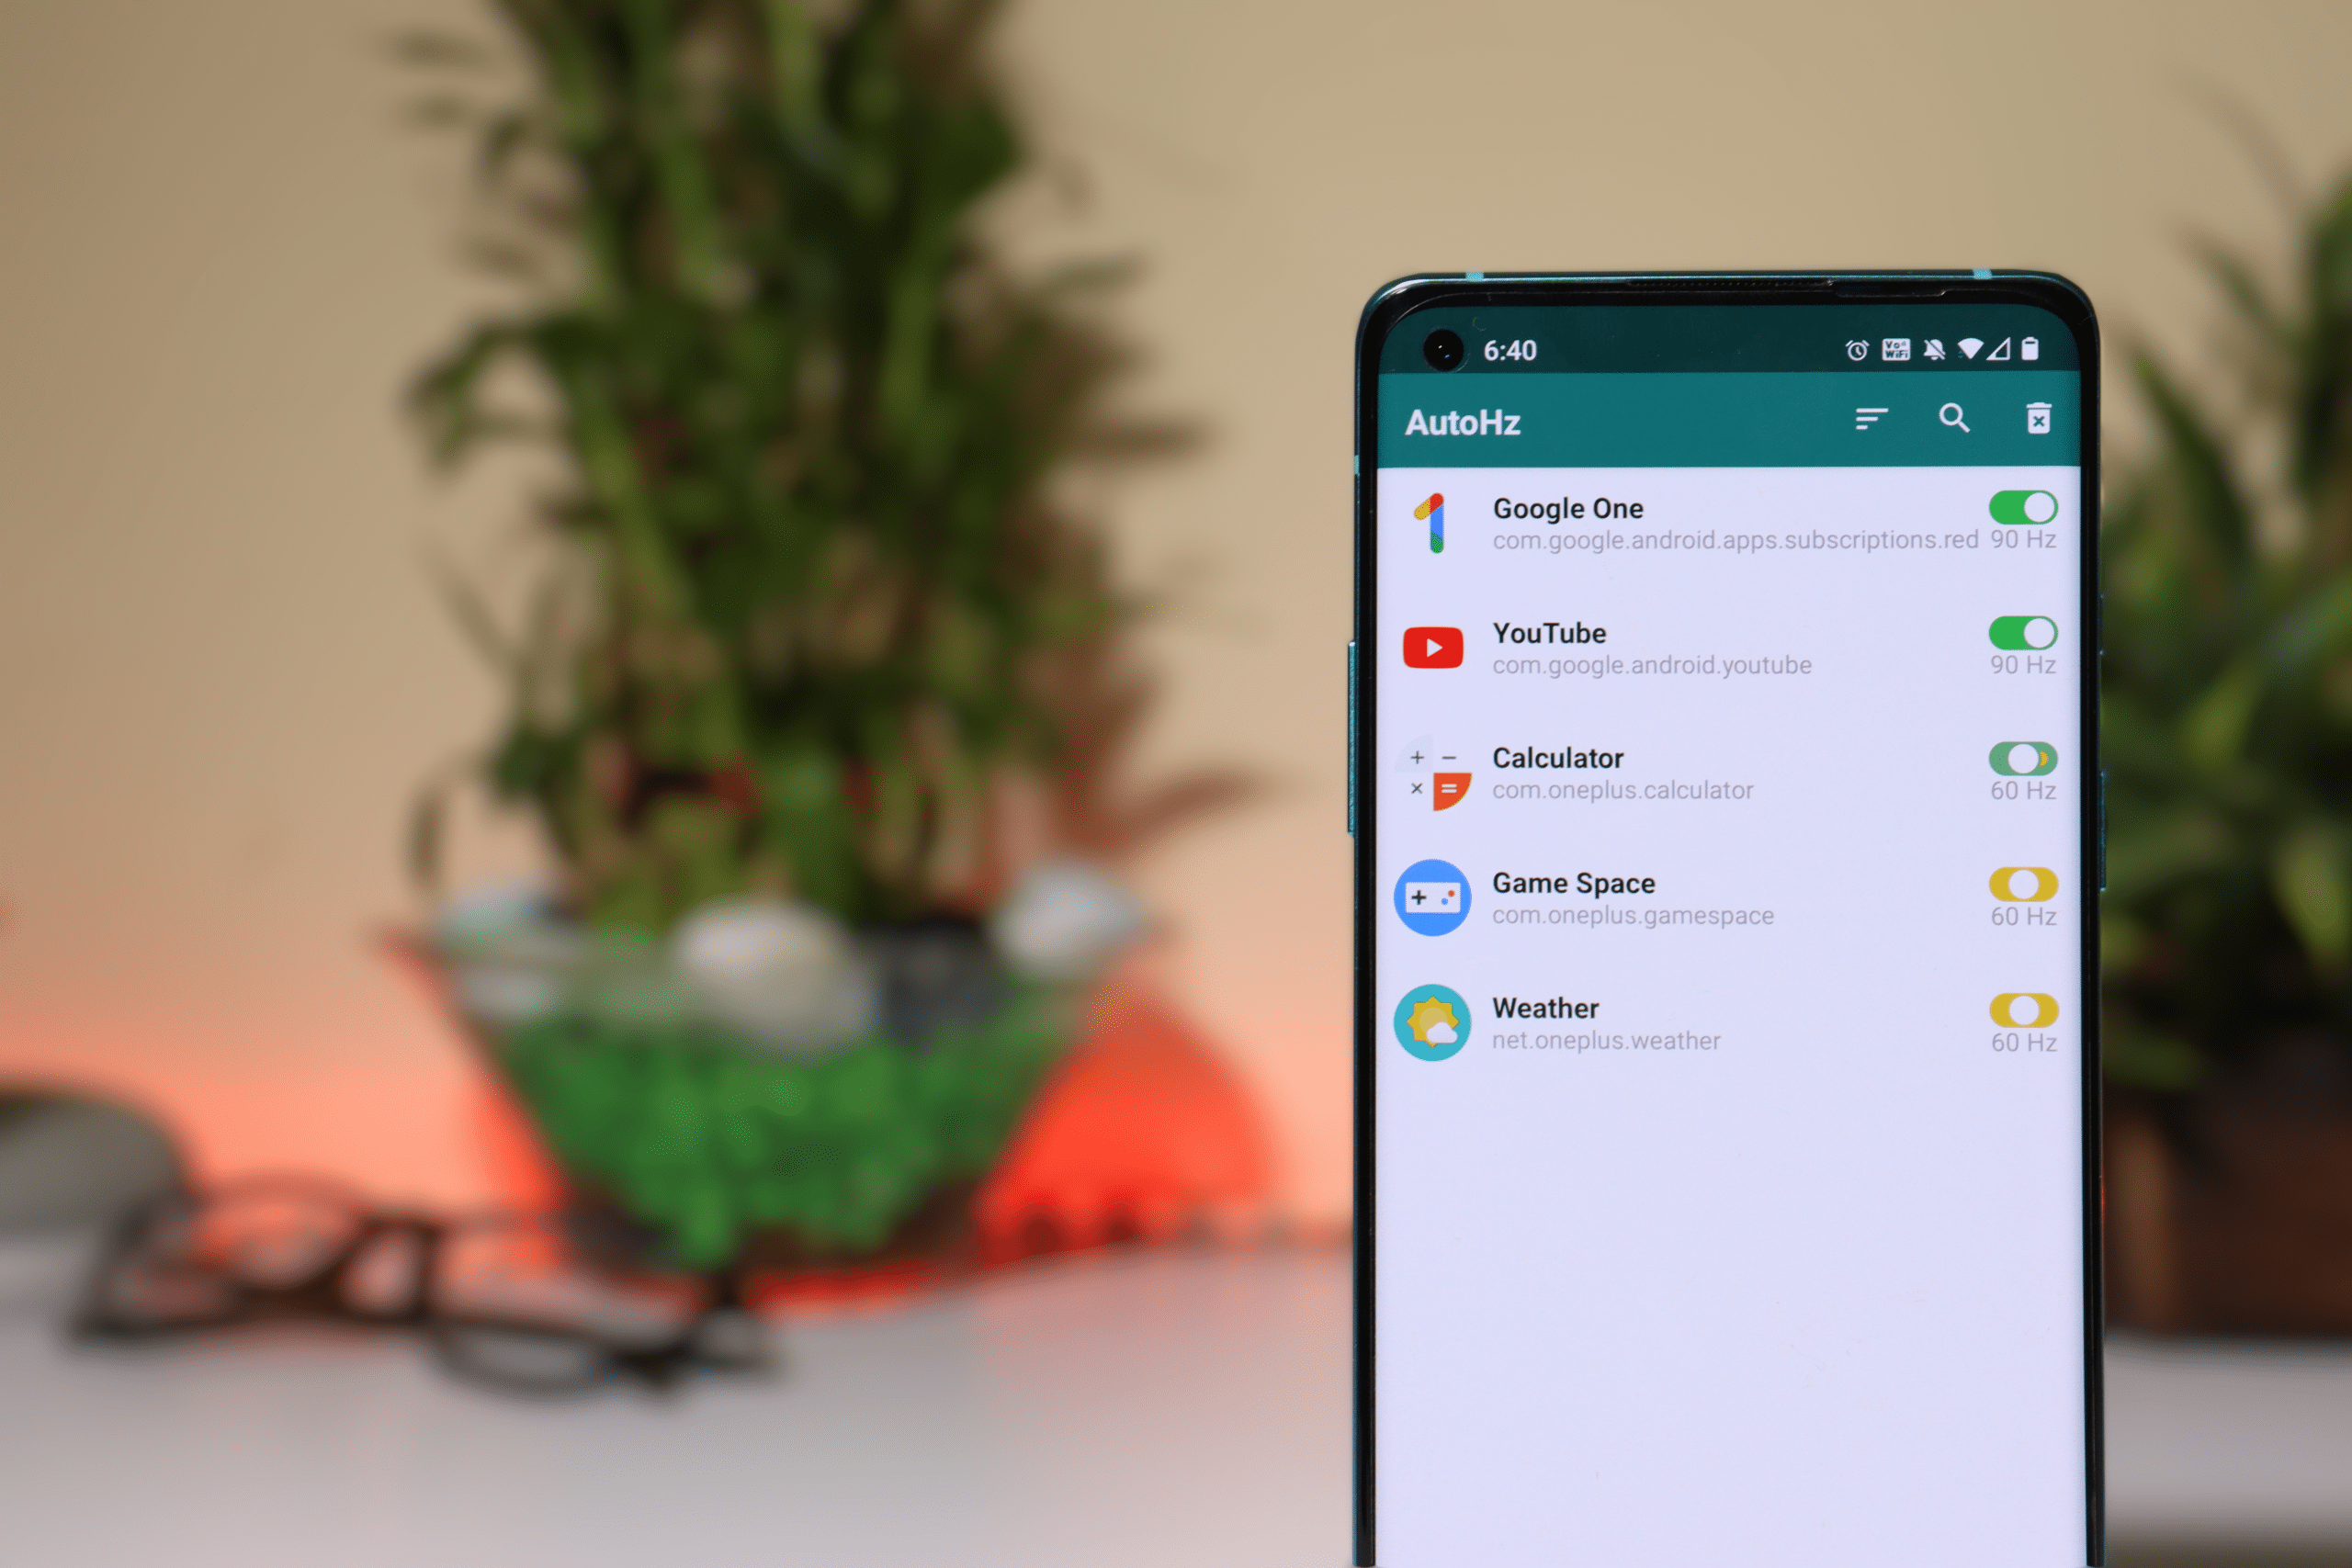 AutoHz lets you control app refresh rate on Oneplus 8 Series